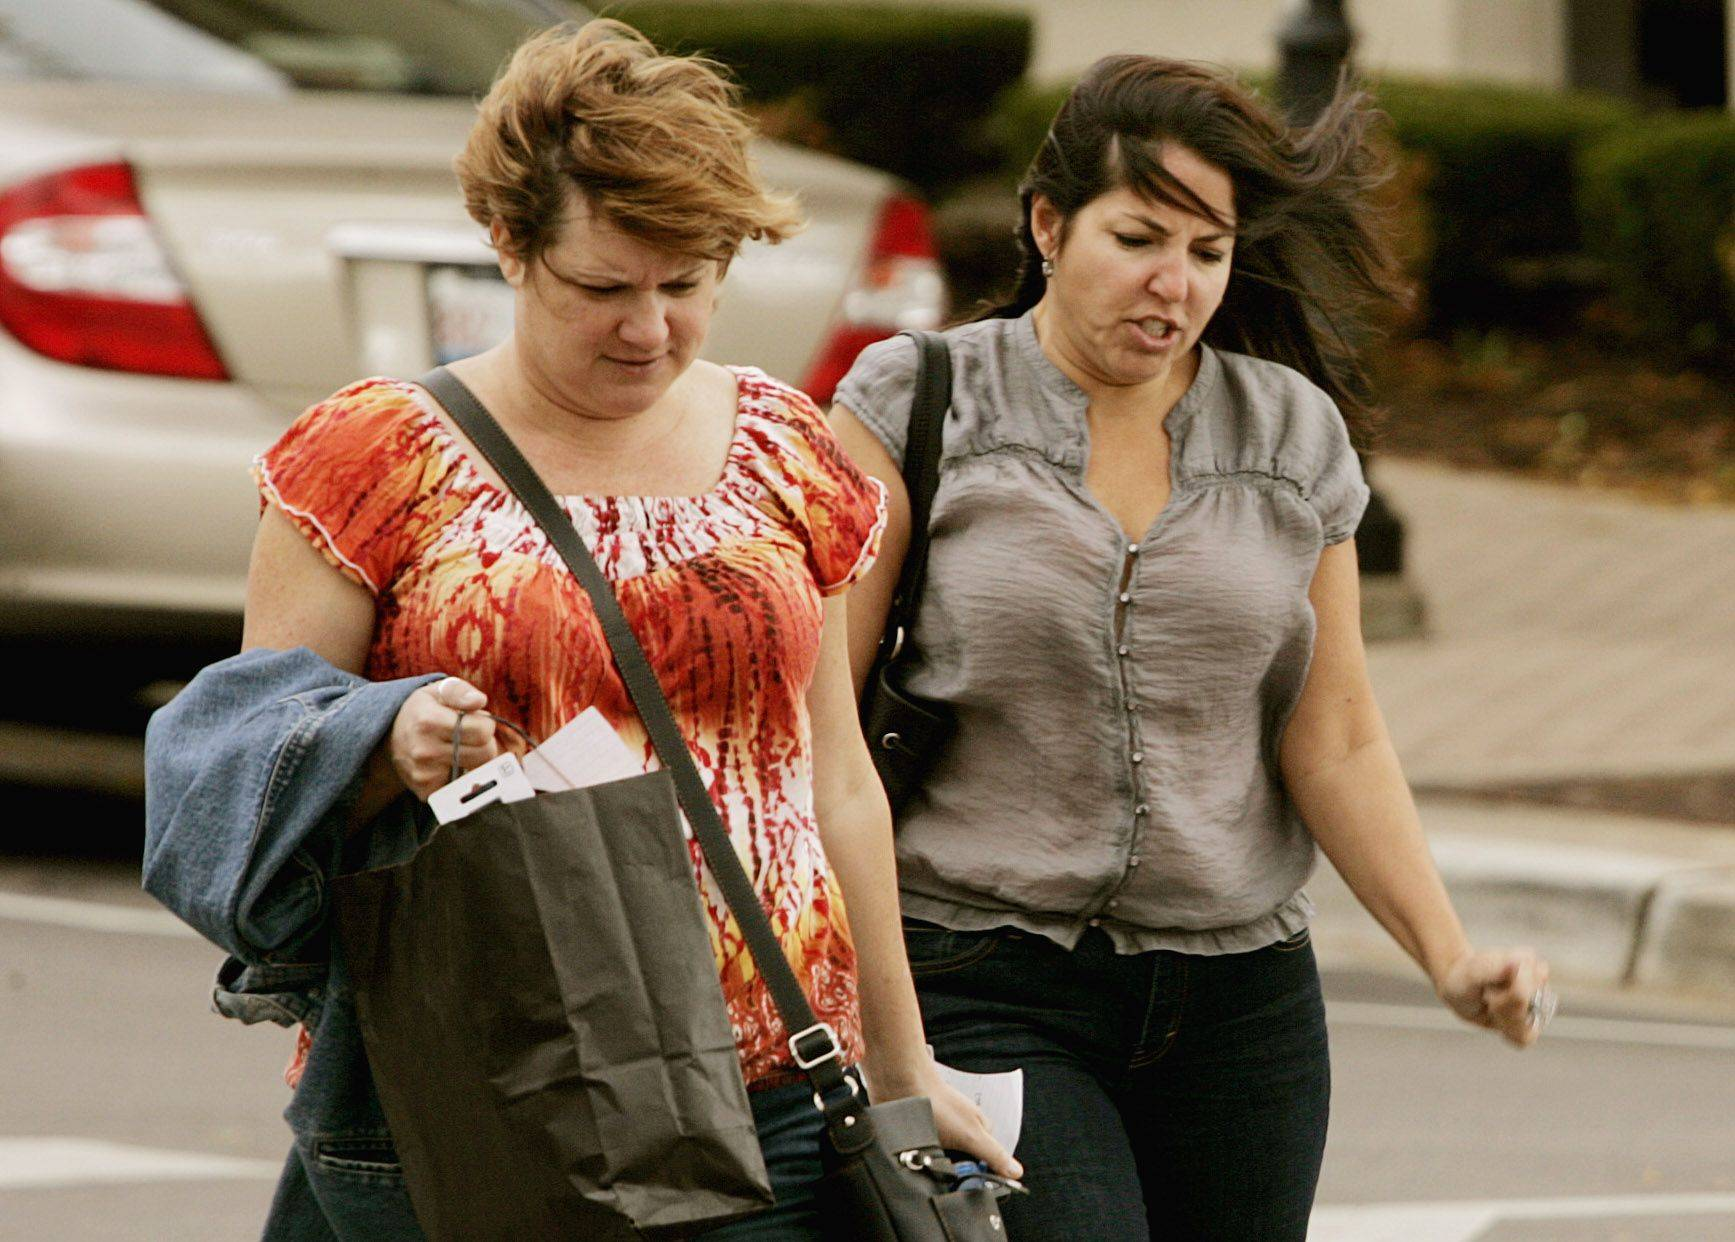 Charlee Hayes, left, and Getty Tune, both of Naperville, fight the wind Tuesday while walking along Jackson Street in downtown Naperville.